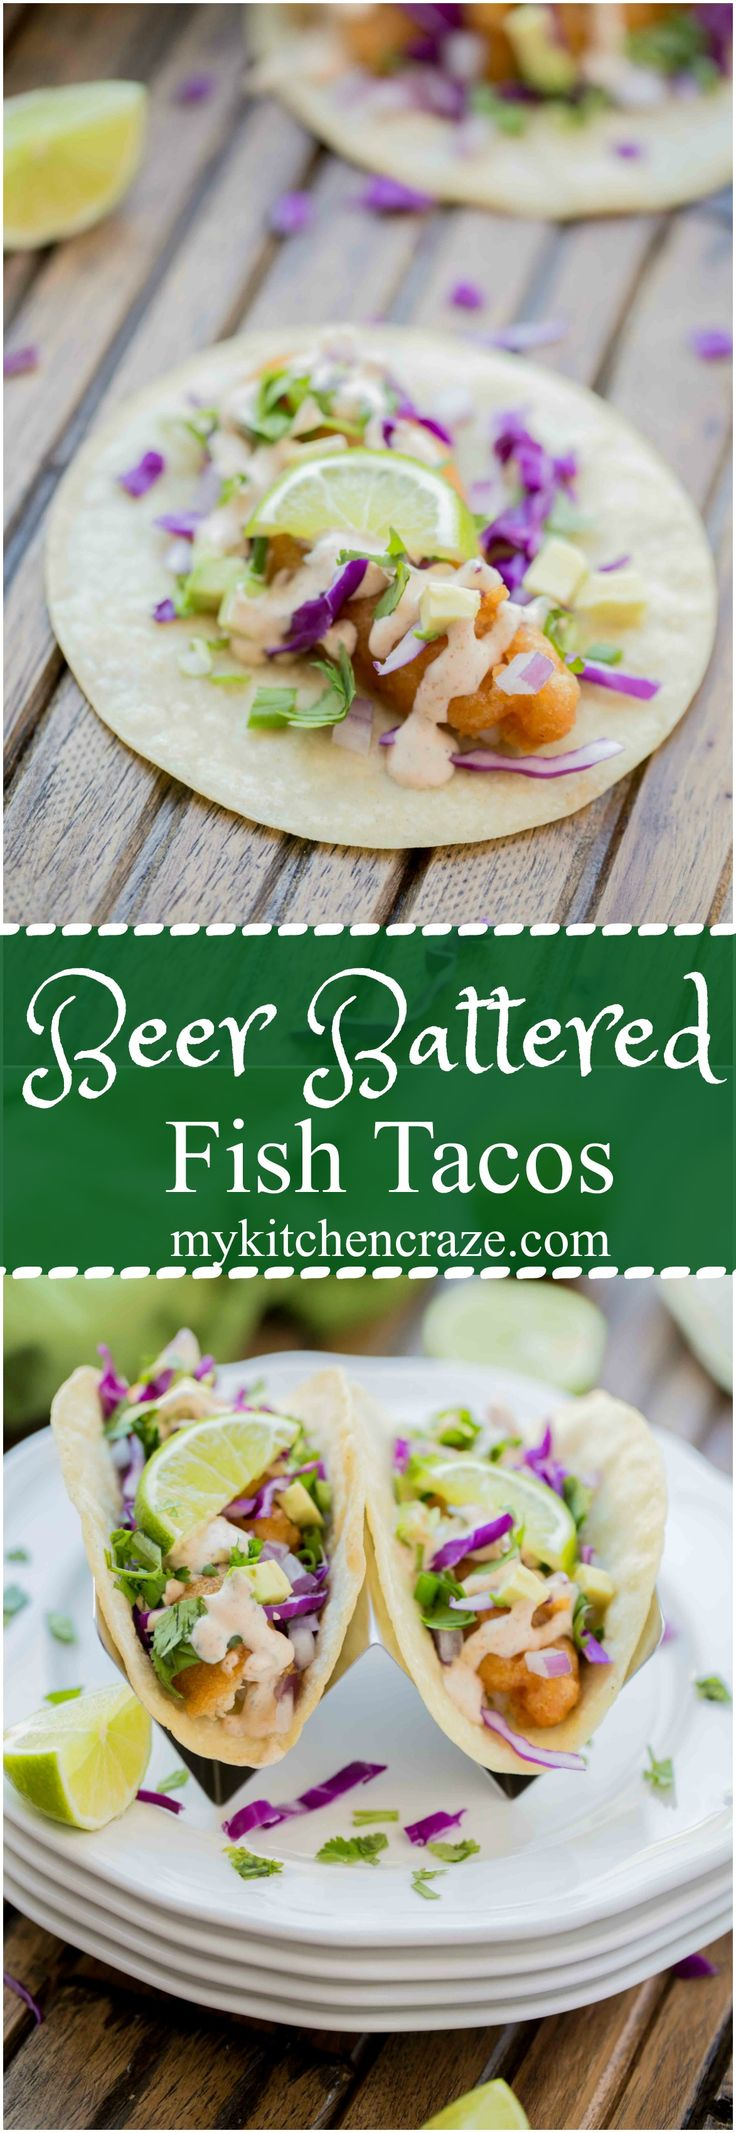 Do you love fish tacos, but have to go out to enjoy them? Well not anymore. These Beer Battered Fish Tacos are not only delicious, but easy to make in the comfort of your own home. Let me show you! #AskForAlaska  #IC #ad @alaskaseafood